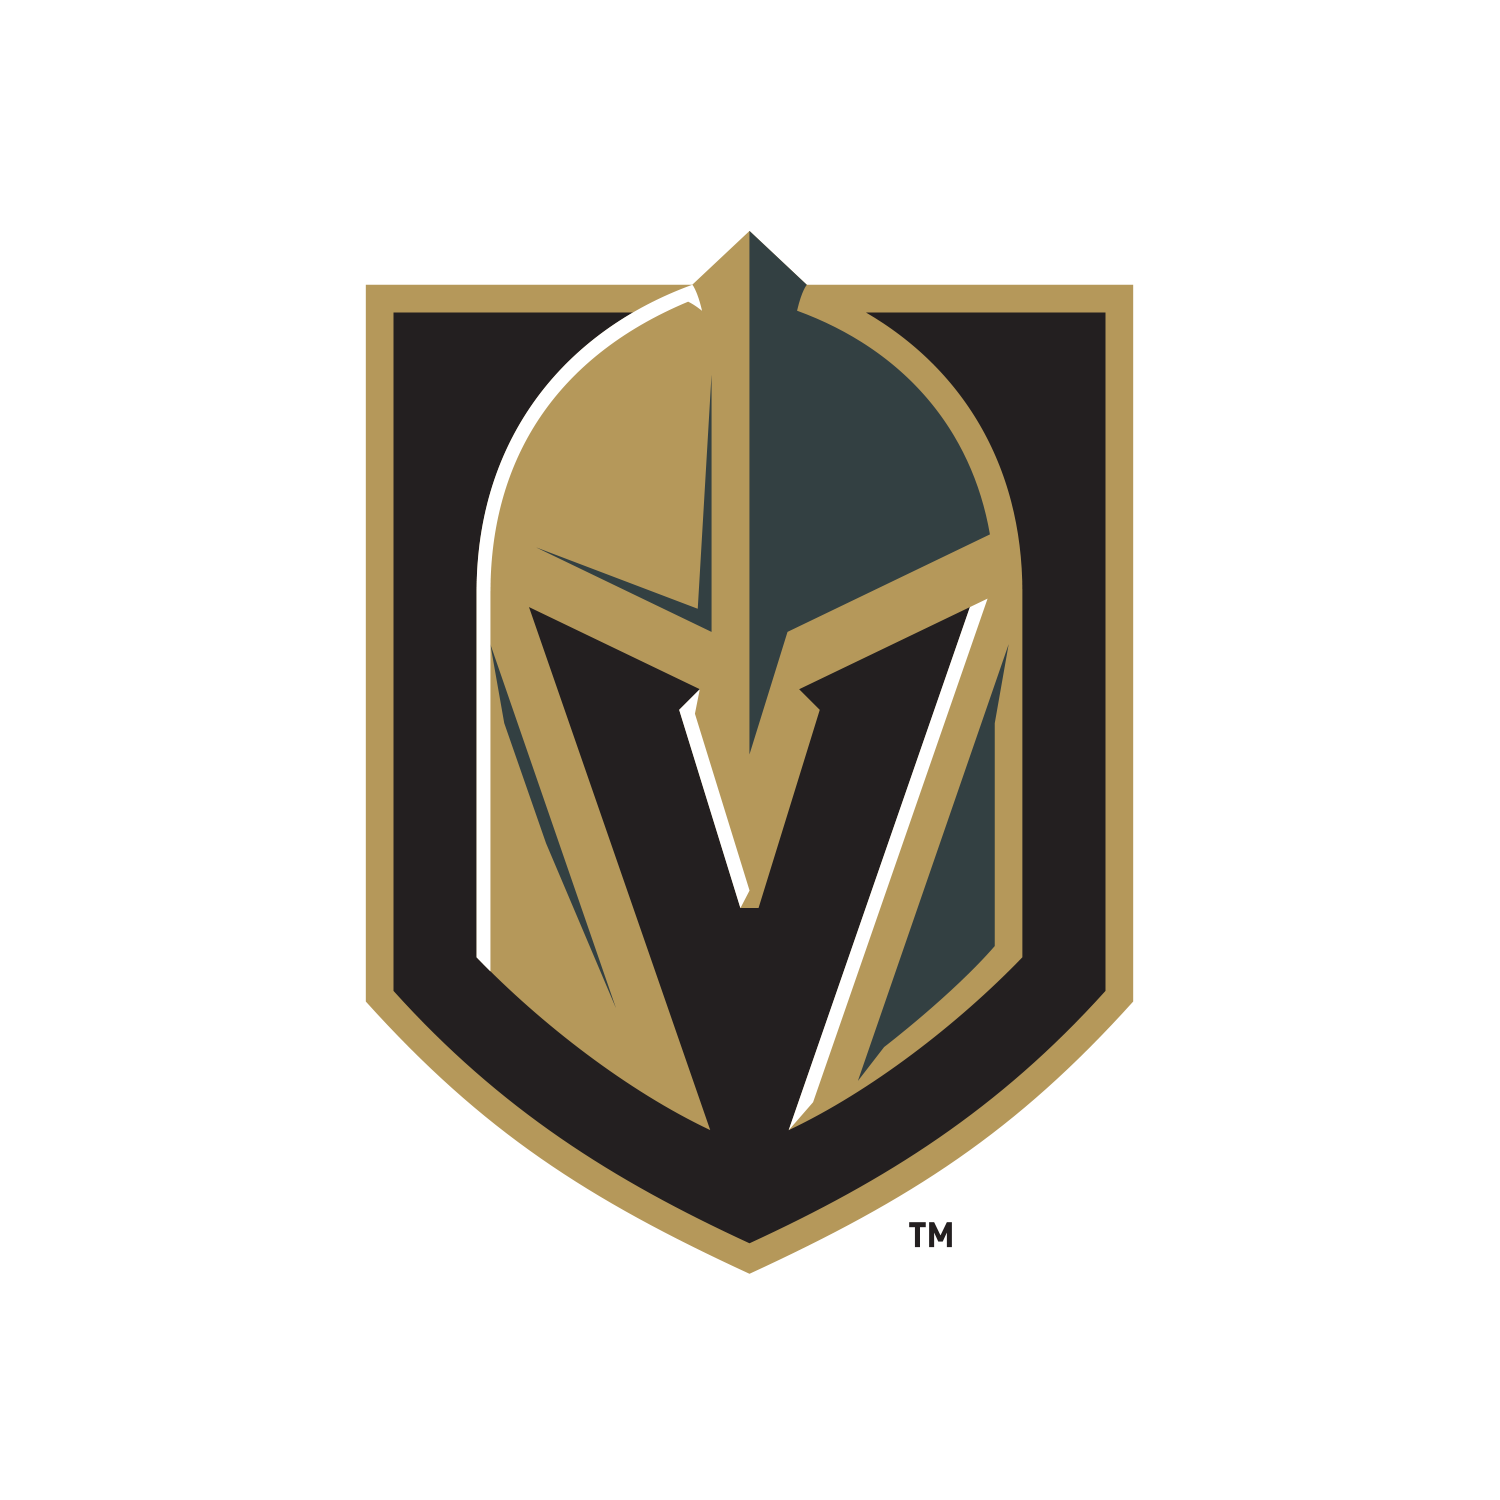 Vegas star clipart clipart library stock Vegas Golden Knights Nhl Logo Official clipart library stock